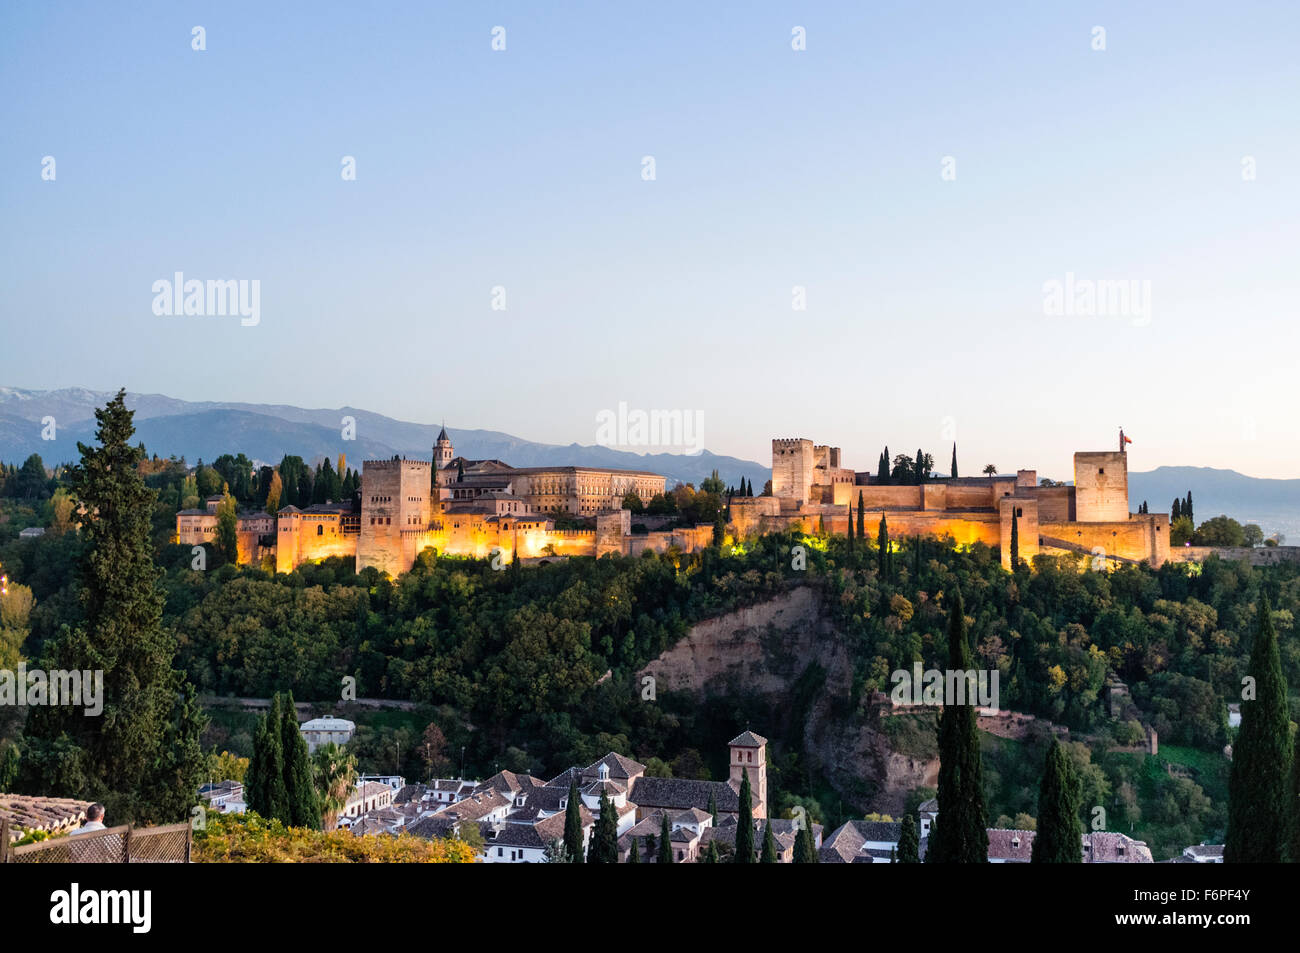 Alhambra palace overview at sunset. Granada, Andalusia, Spain - Stock Image